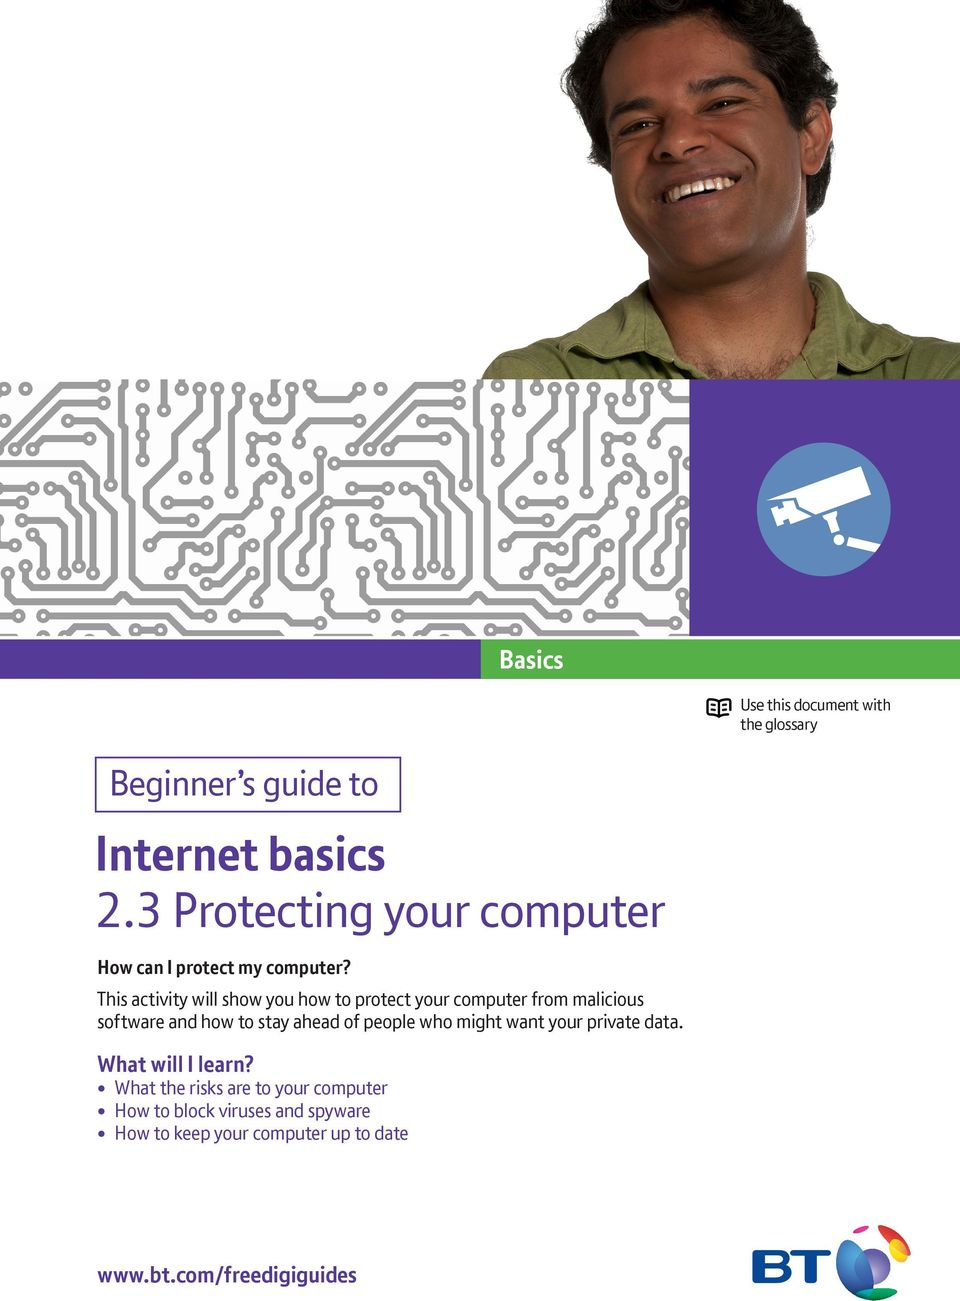 This activity will show you how to protect your computer from malicious software and how to stay ahead of